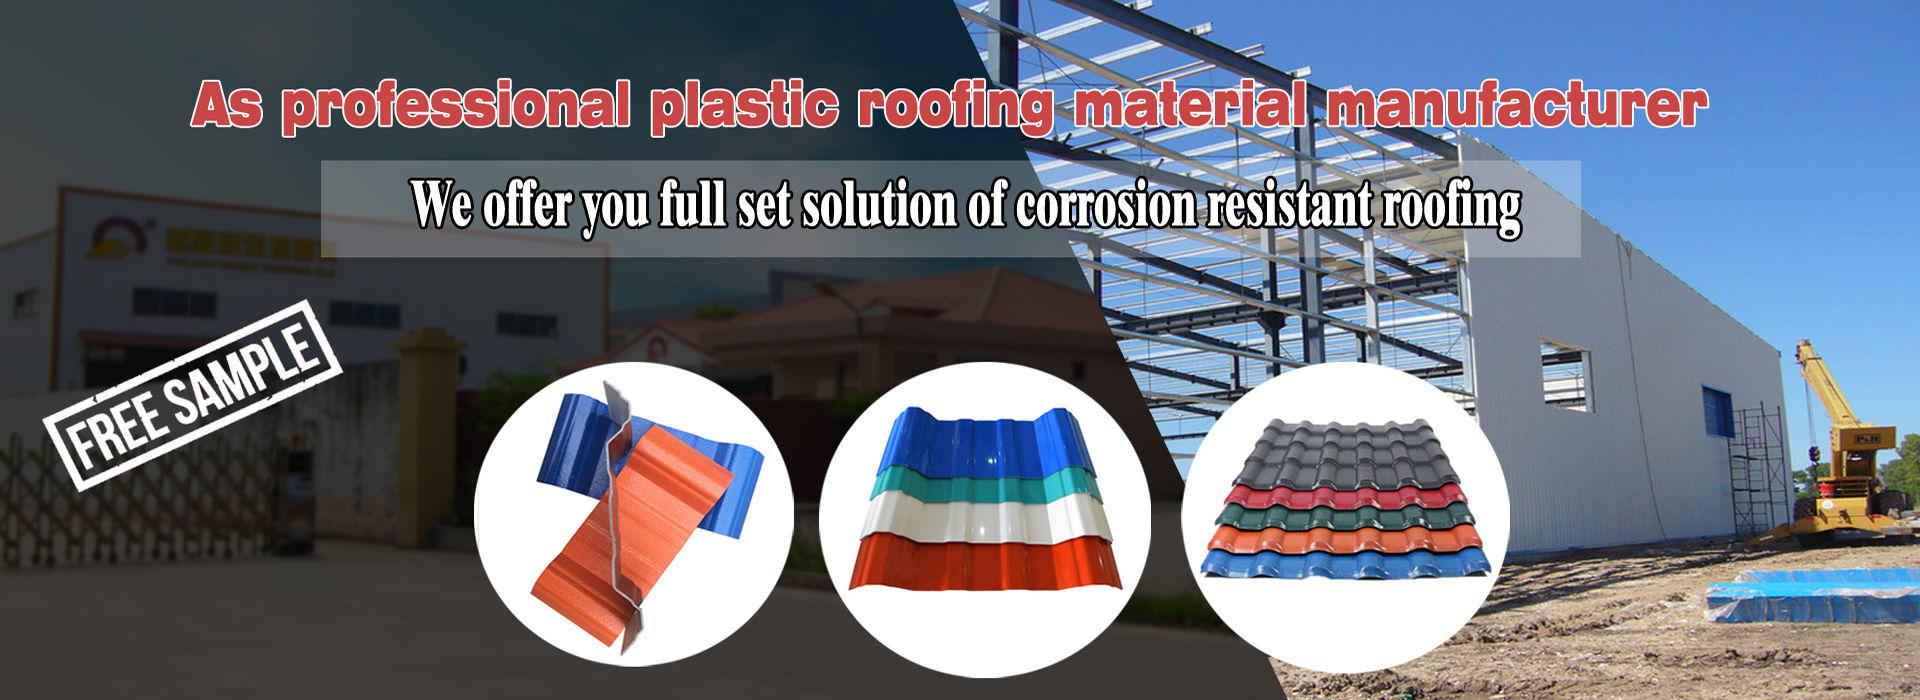 PVC roofing manufacturer